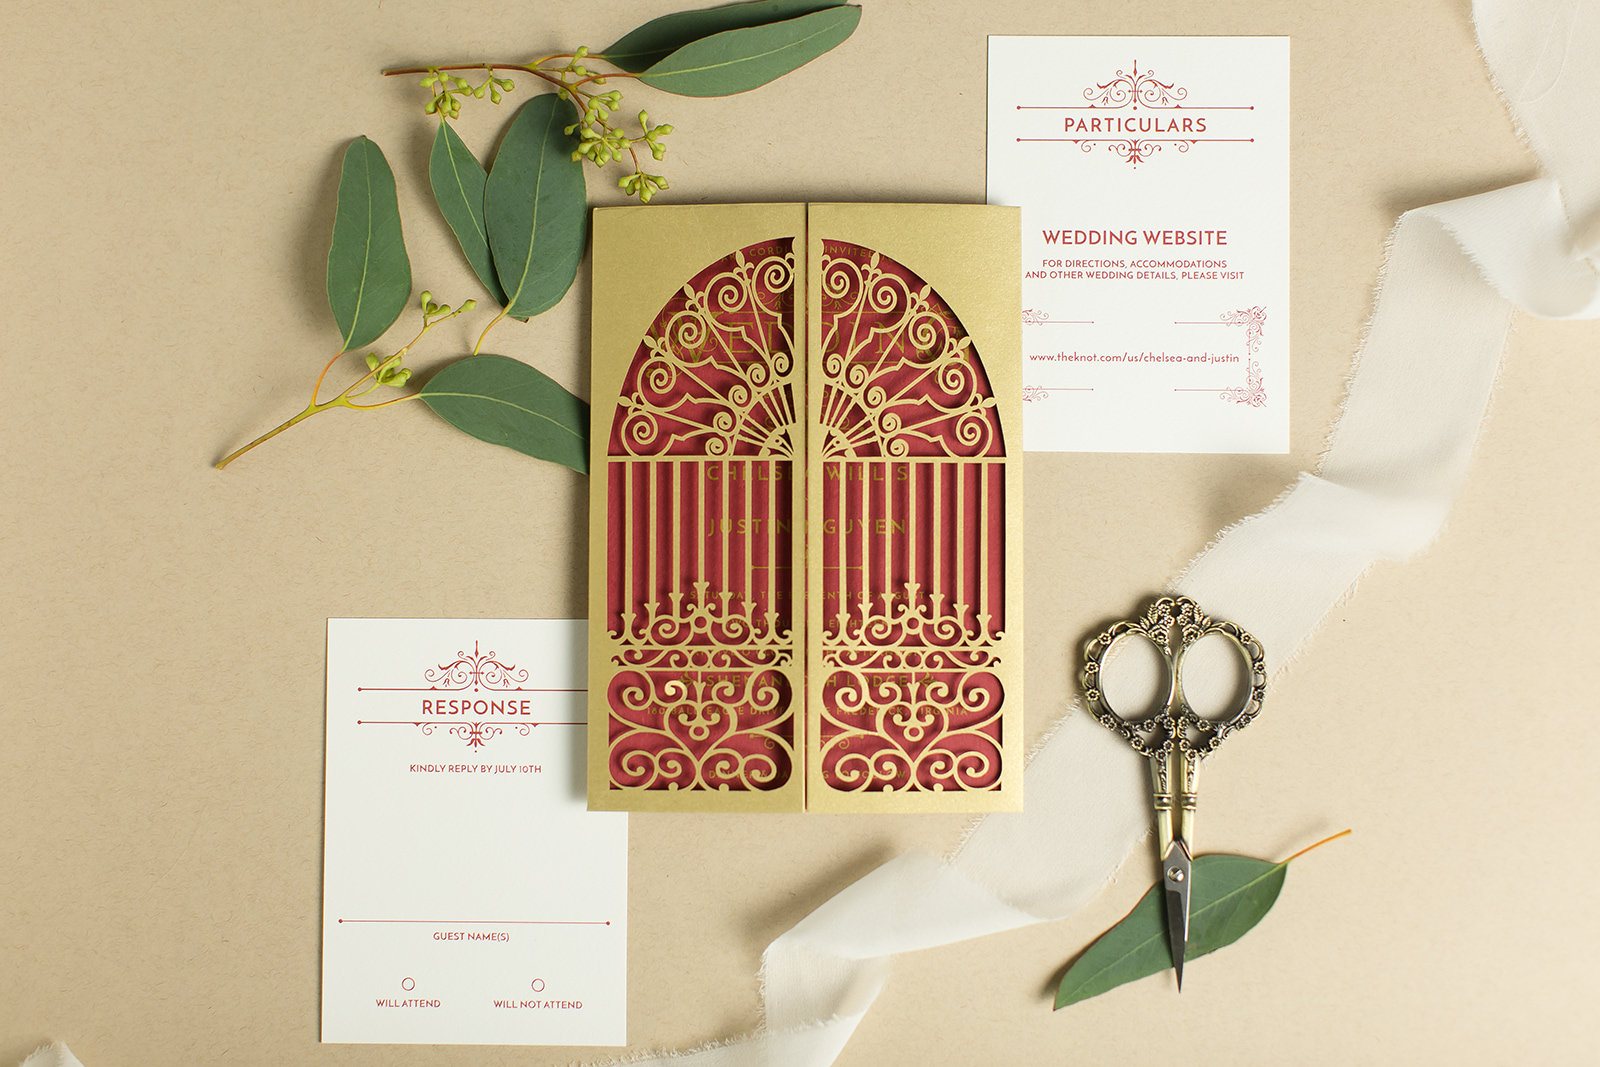 Custom wedding invitations Fairfax, Virginia.  Magical wedding invitation features gold flat printing on red card presented in a gold lasercut gate.